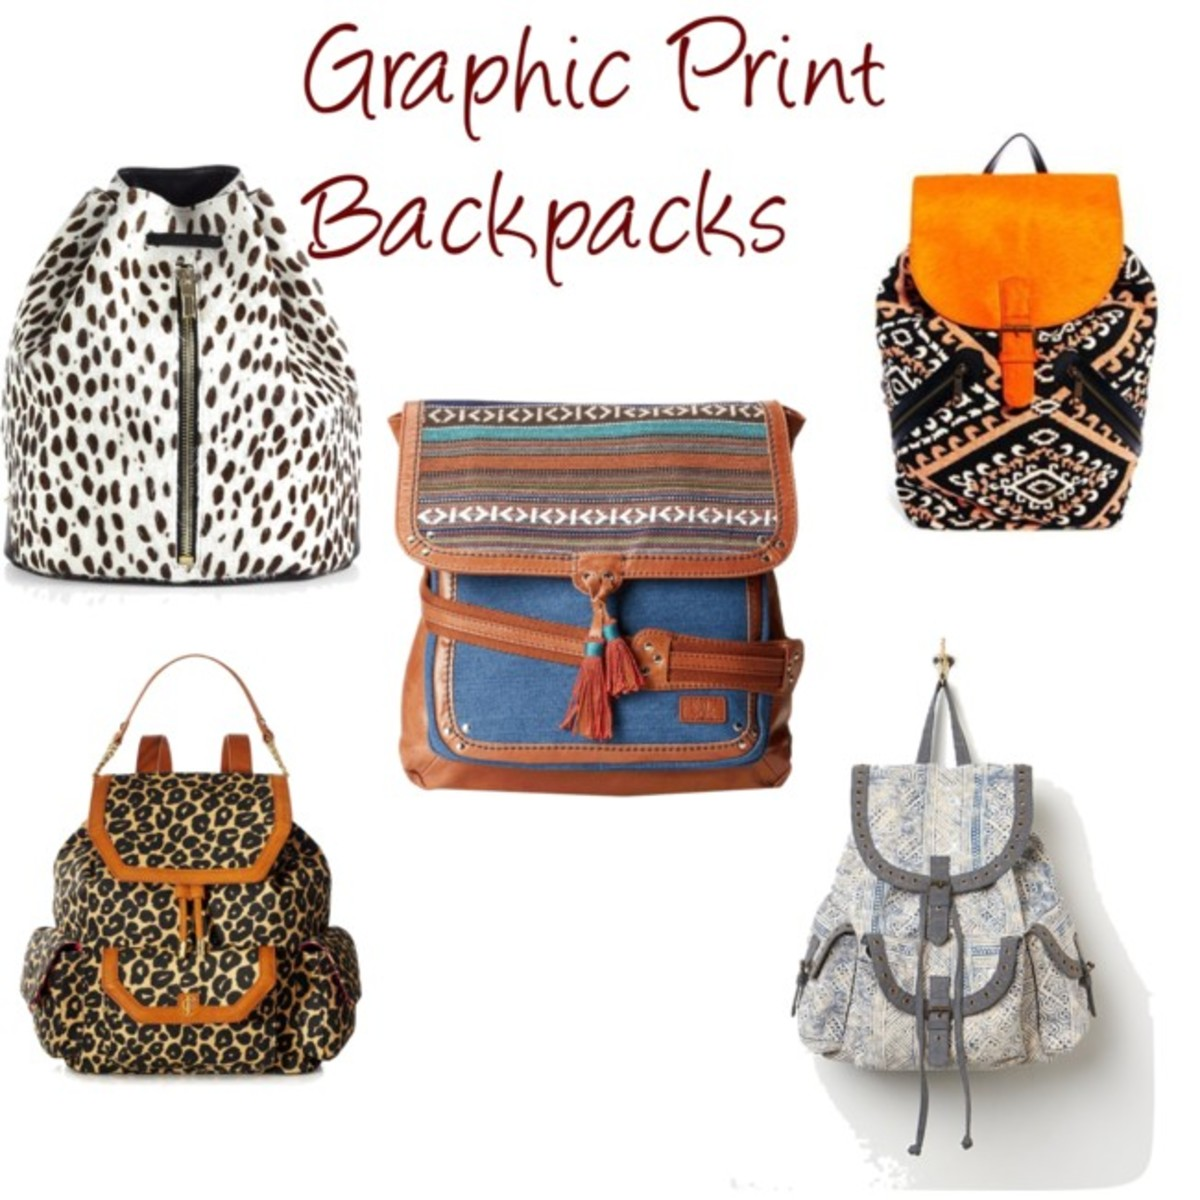 graphic print backpacks